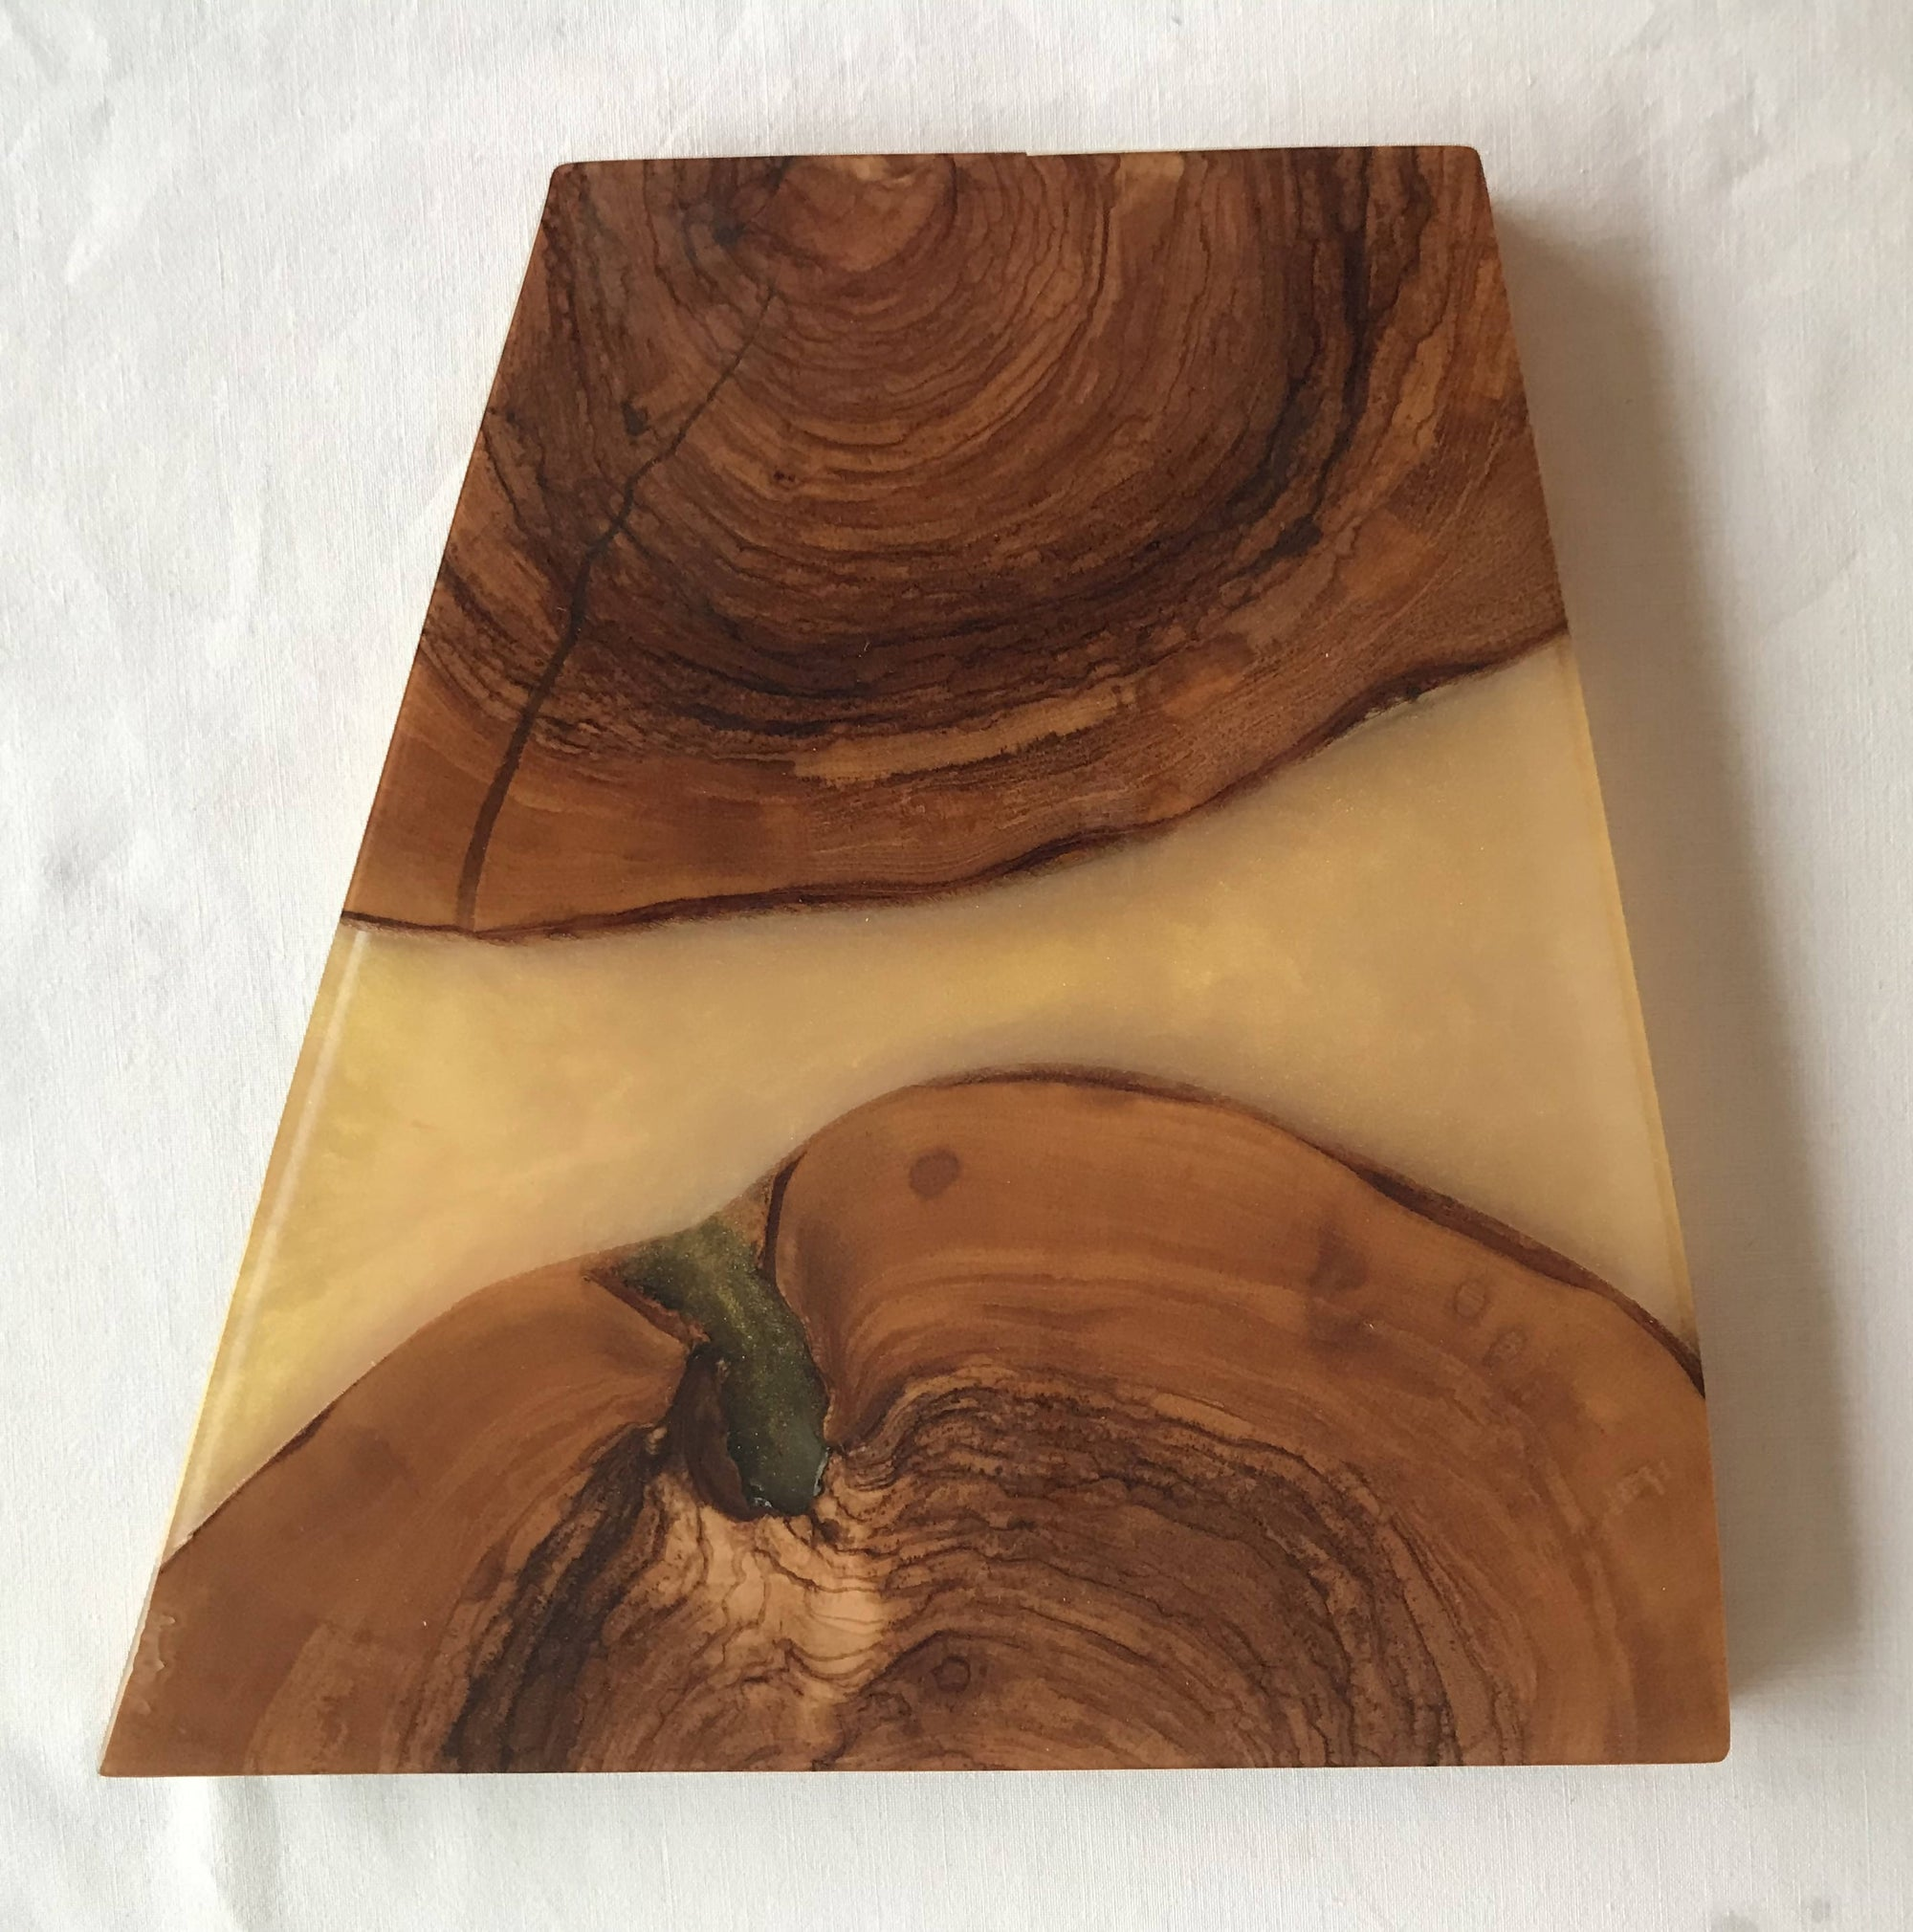 Serving Board - Wood/Resin River